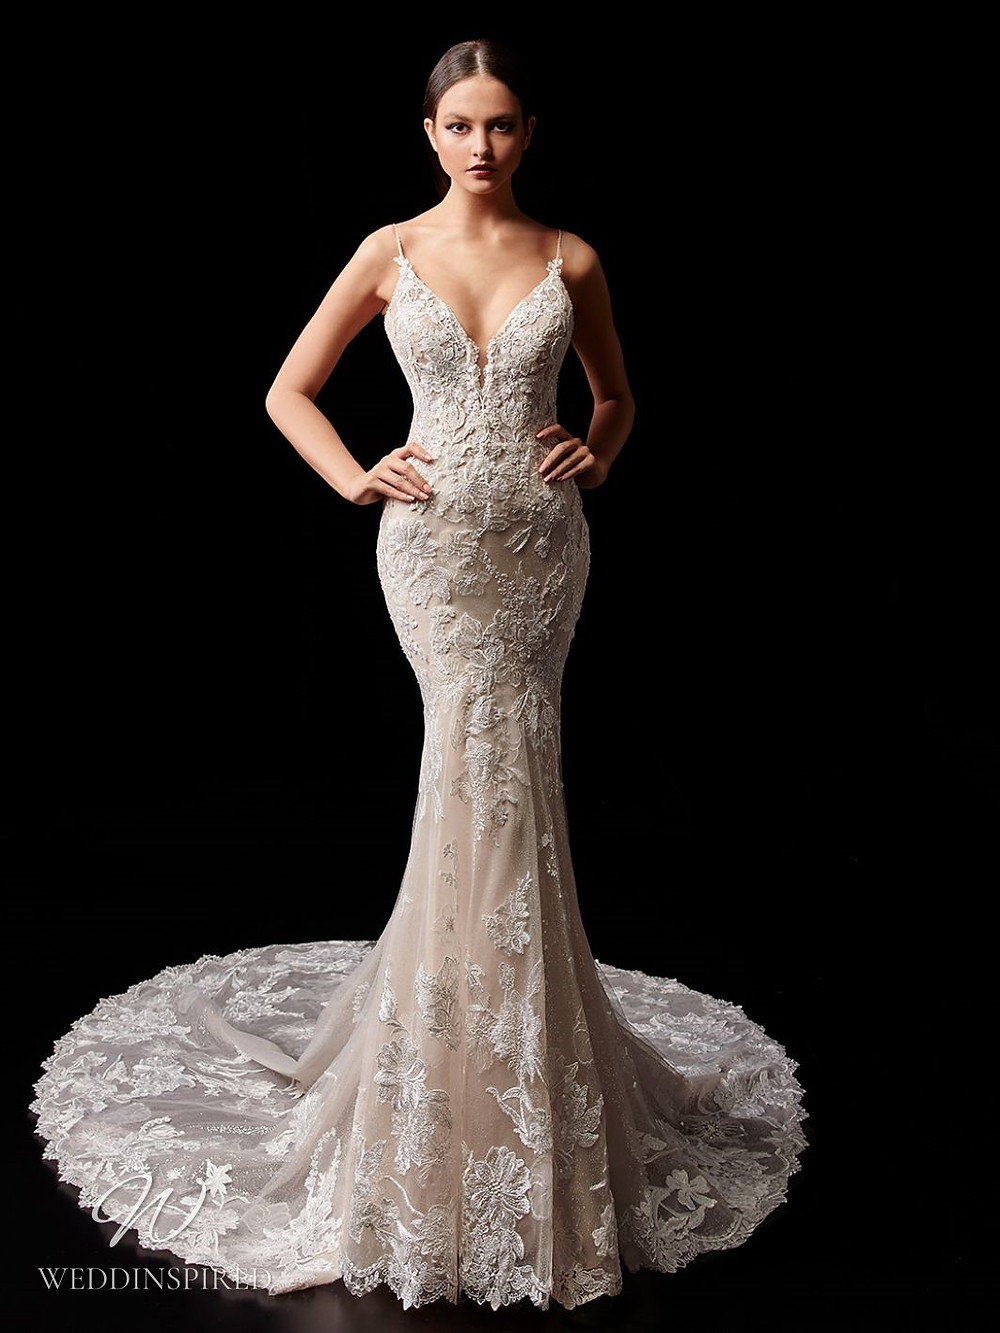 An Enzoani blush lace mermaid wedding dress with straps and a train